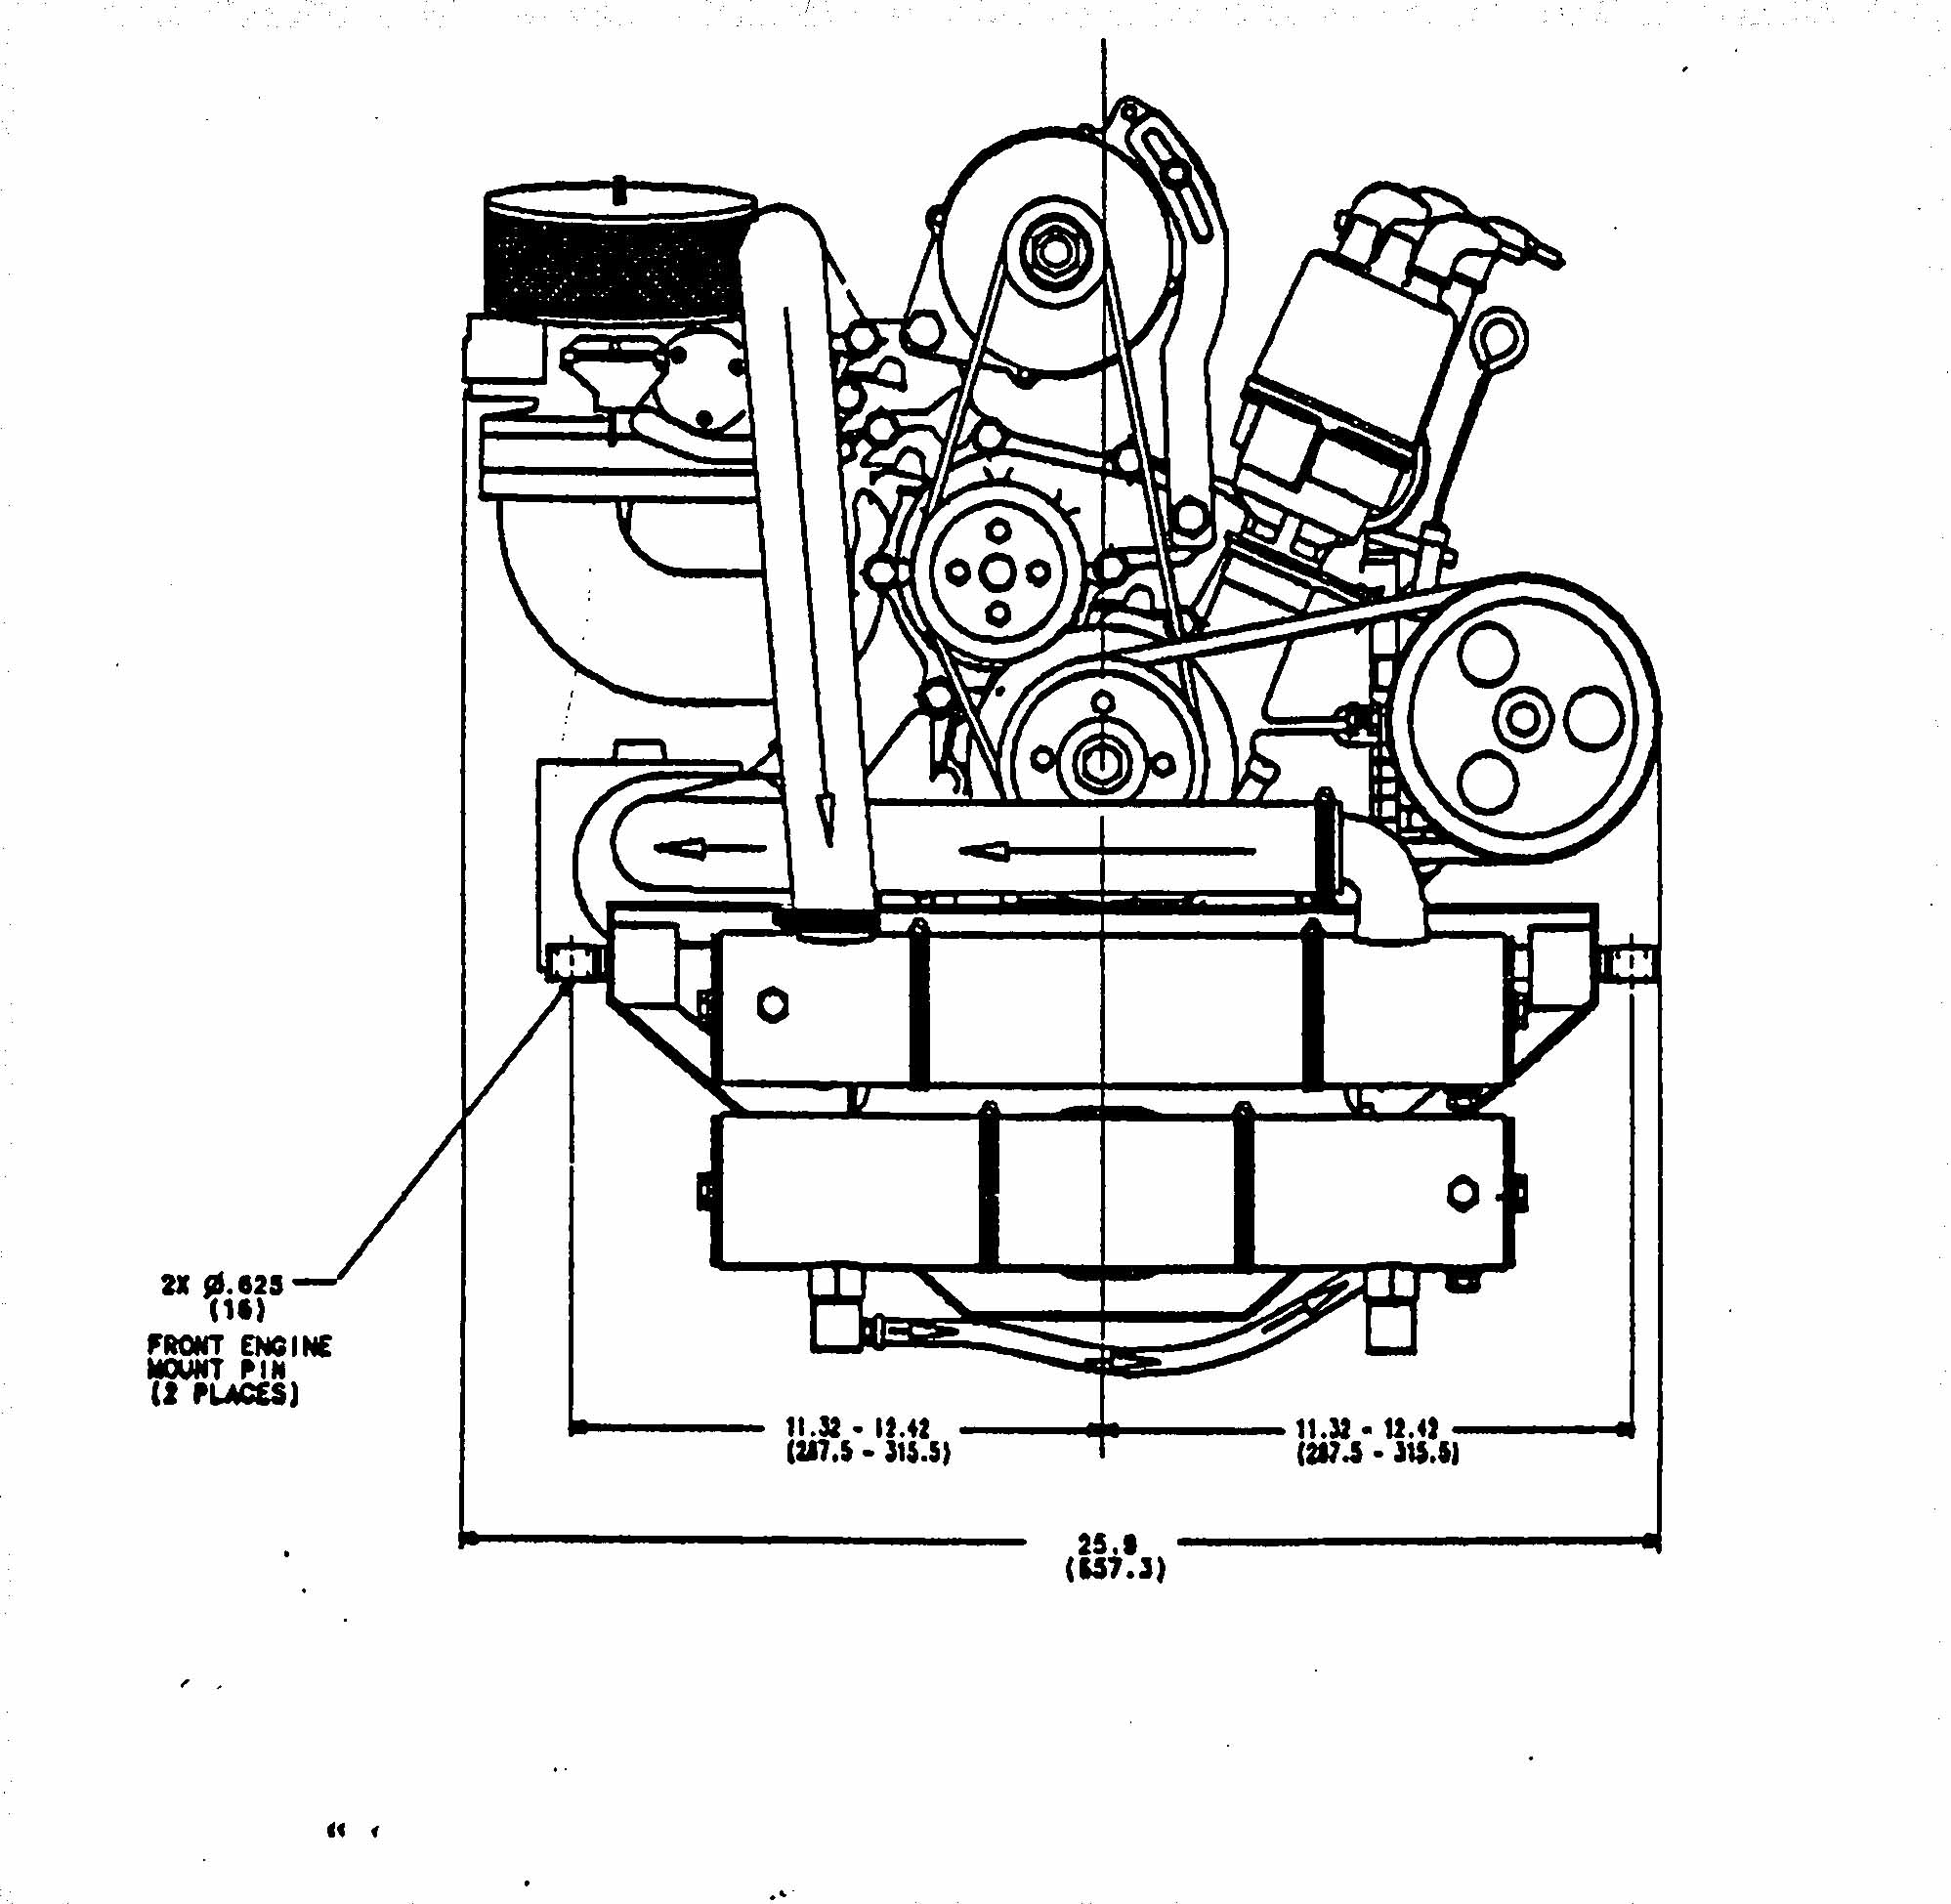 b13evdim dim engine diagram wiring diagram